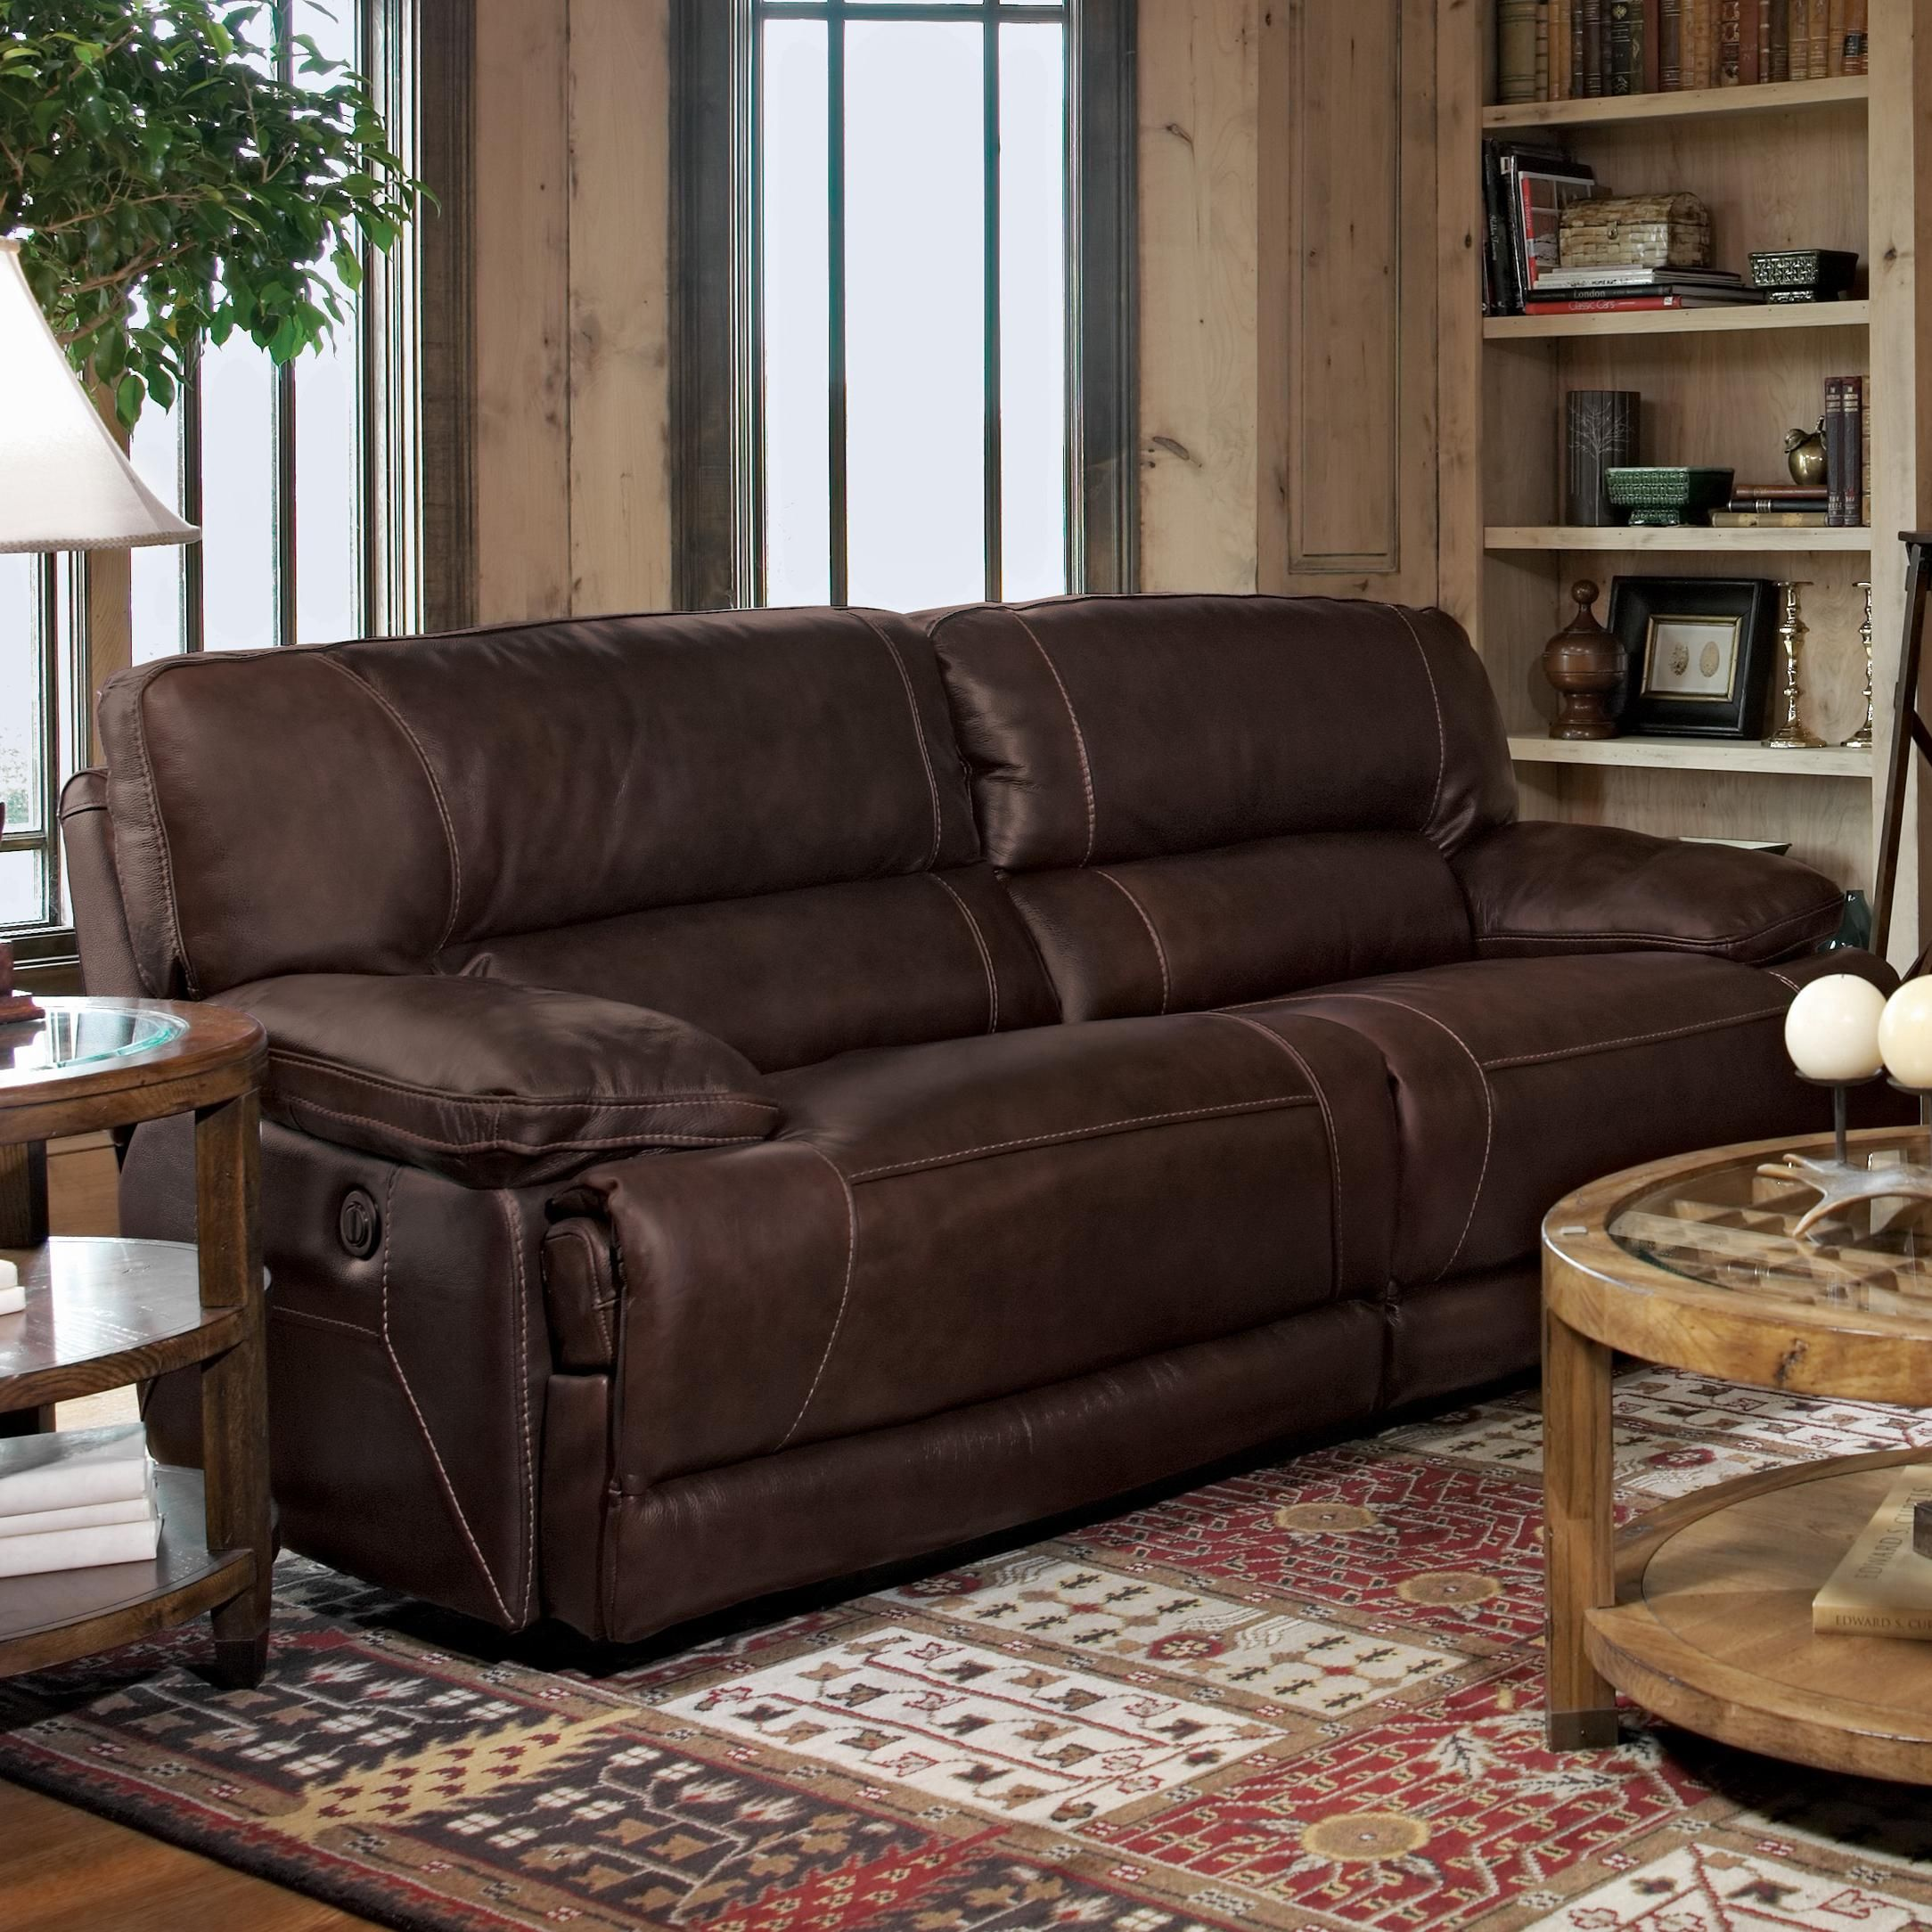 Lancaster Leather Recliner Consider Cognac Chestnut or Distressed